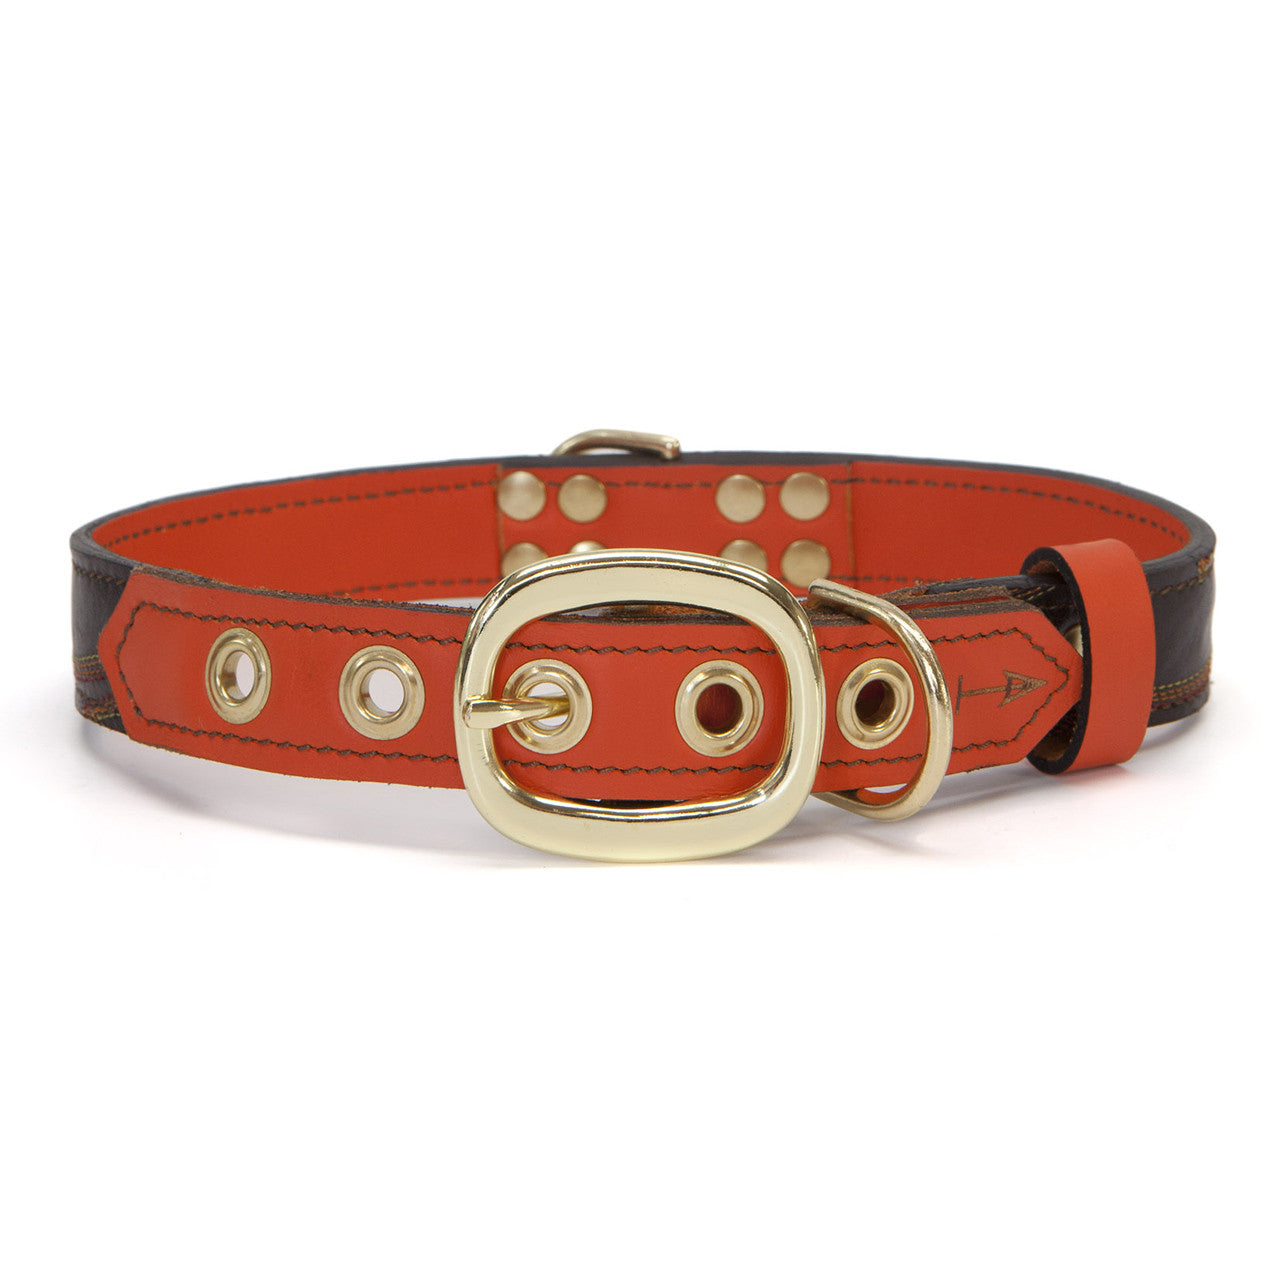 Orange Dog Collar with Medium Brown Leather + Multicolor Stitching (back view)